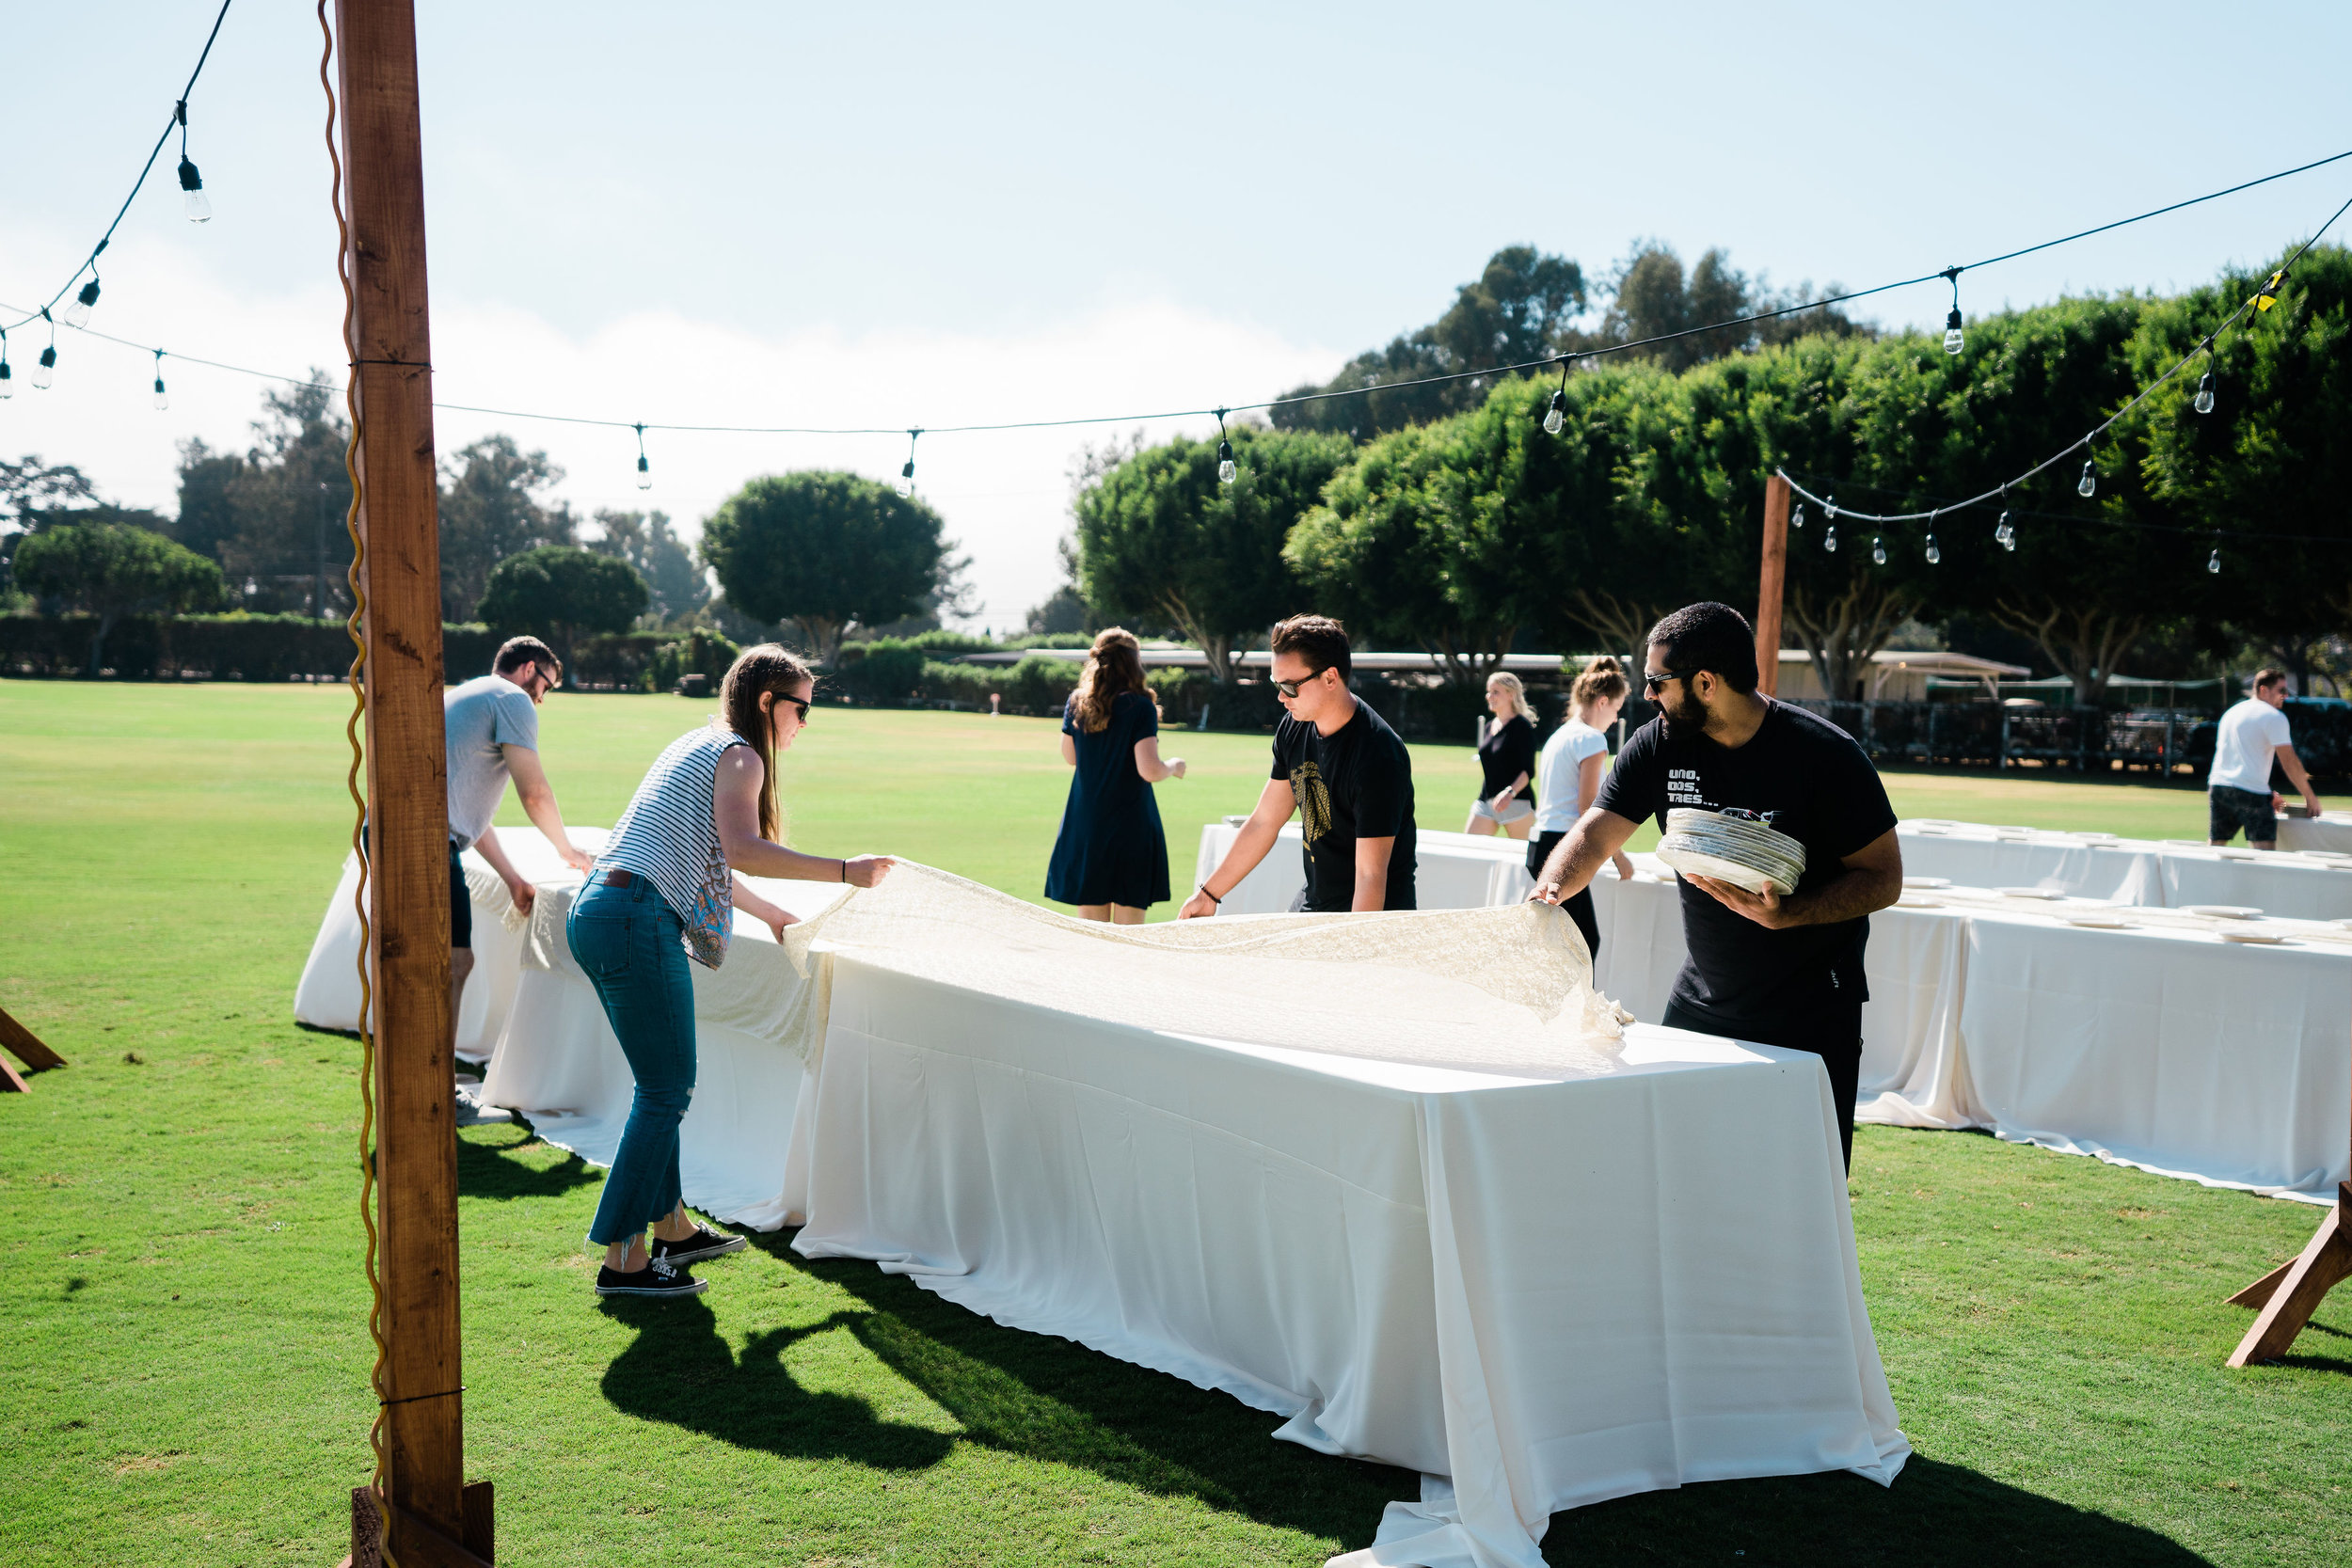 allie-shupe-tyler-wiggins-wedding-santa-barbara 002.jpg